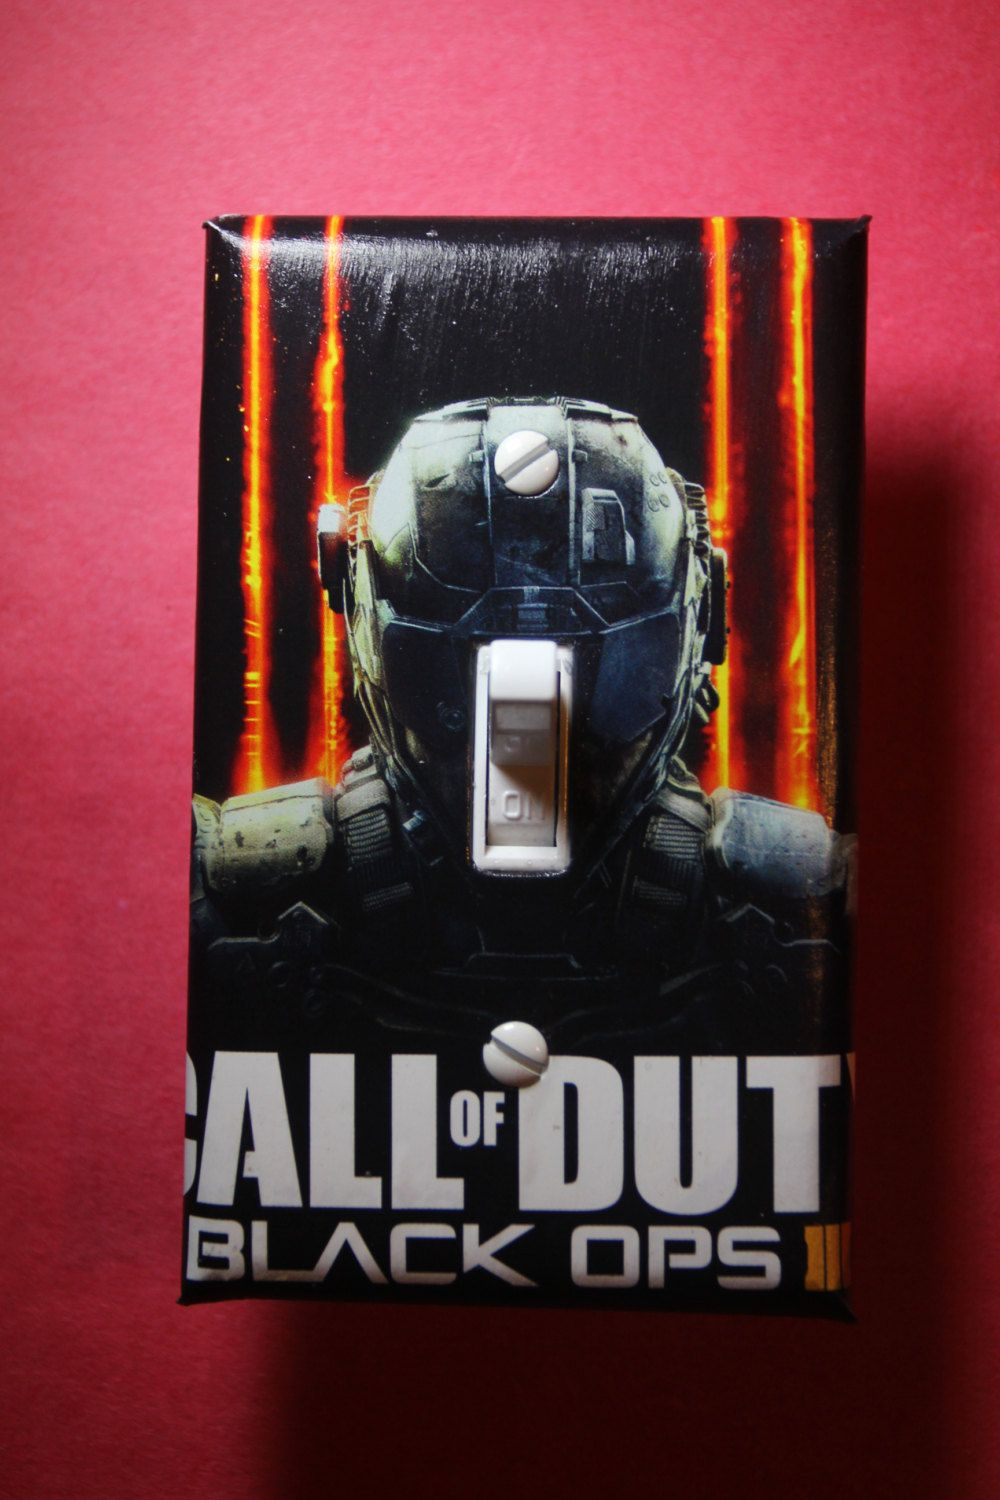 call of duty black ops iii 3 light switch plate cover gamer room